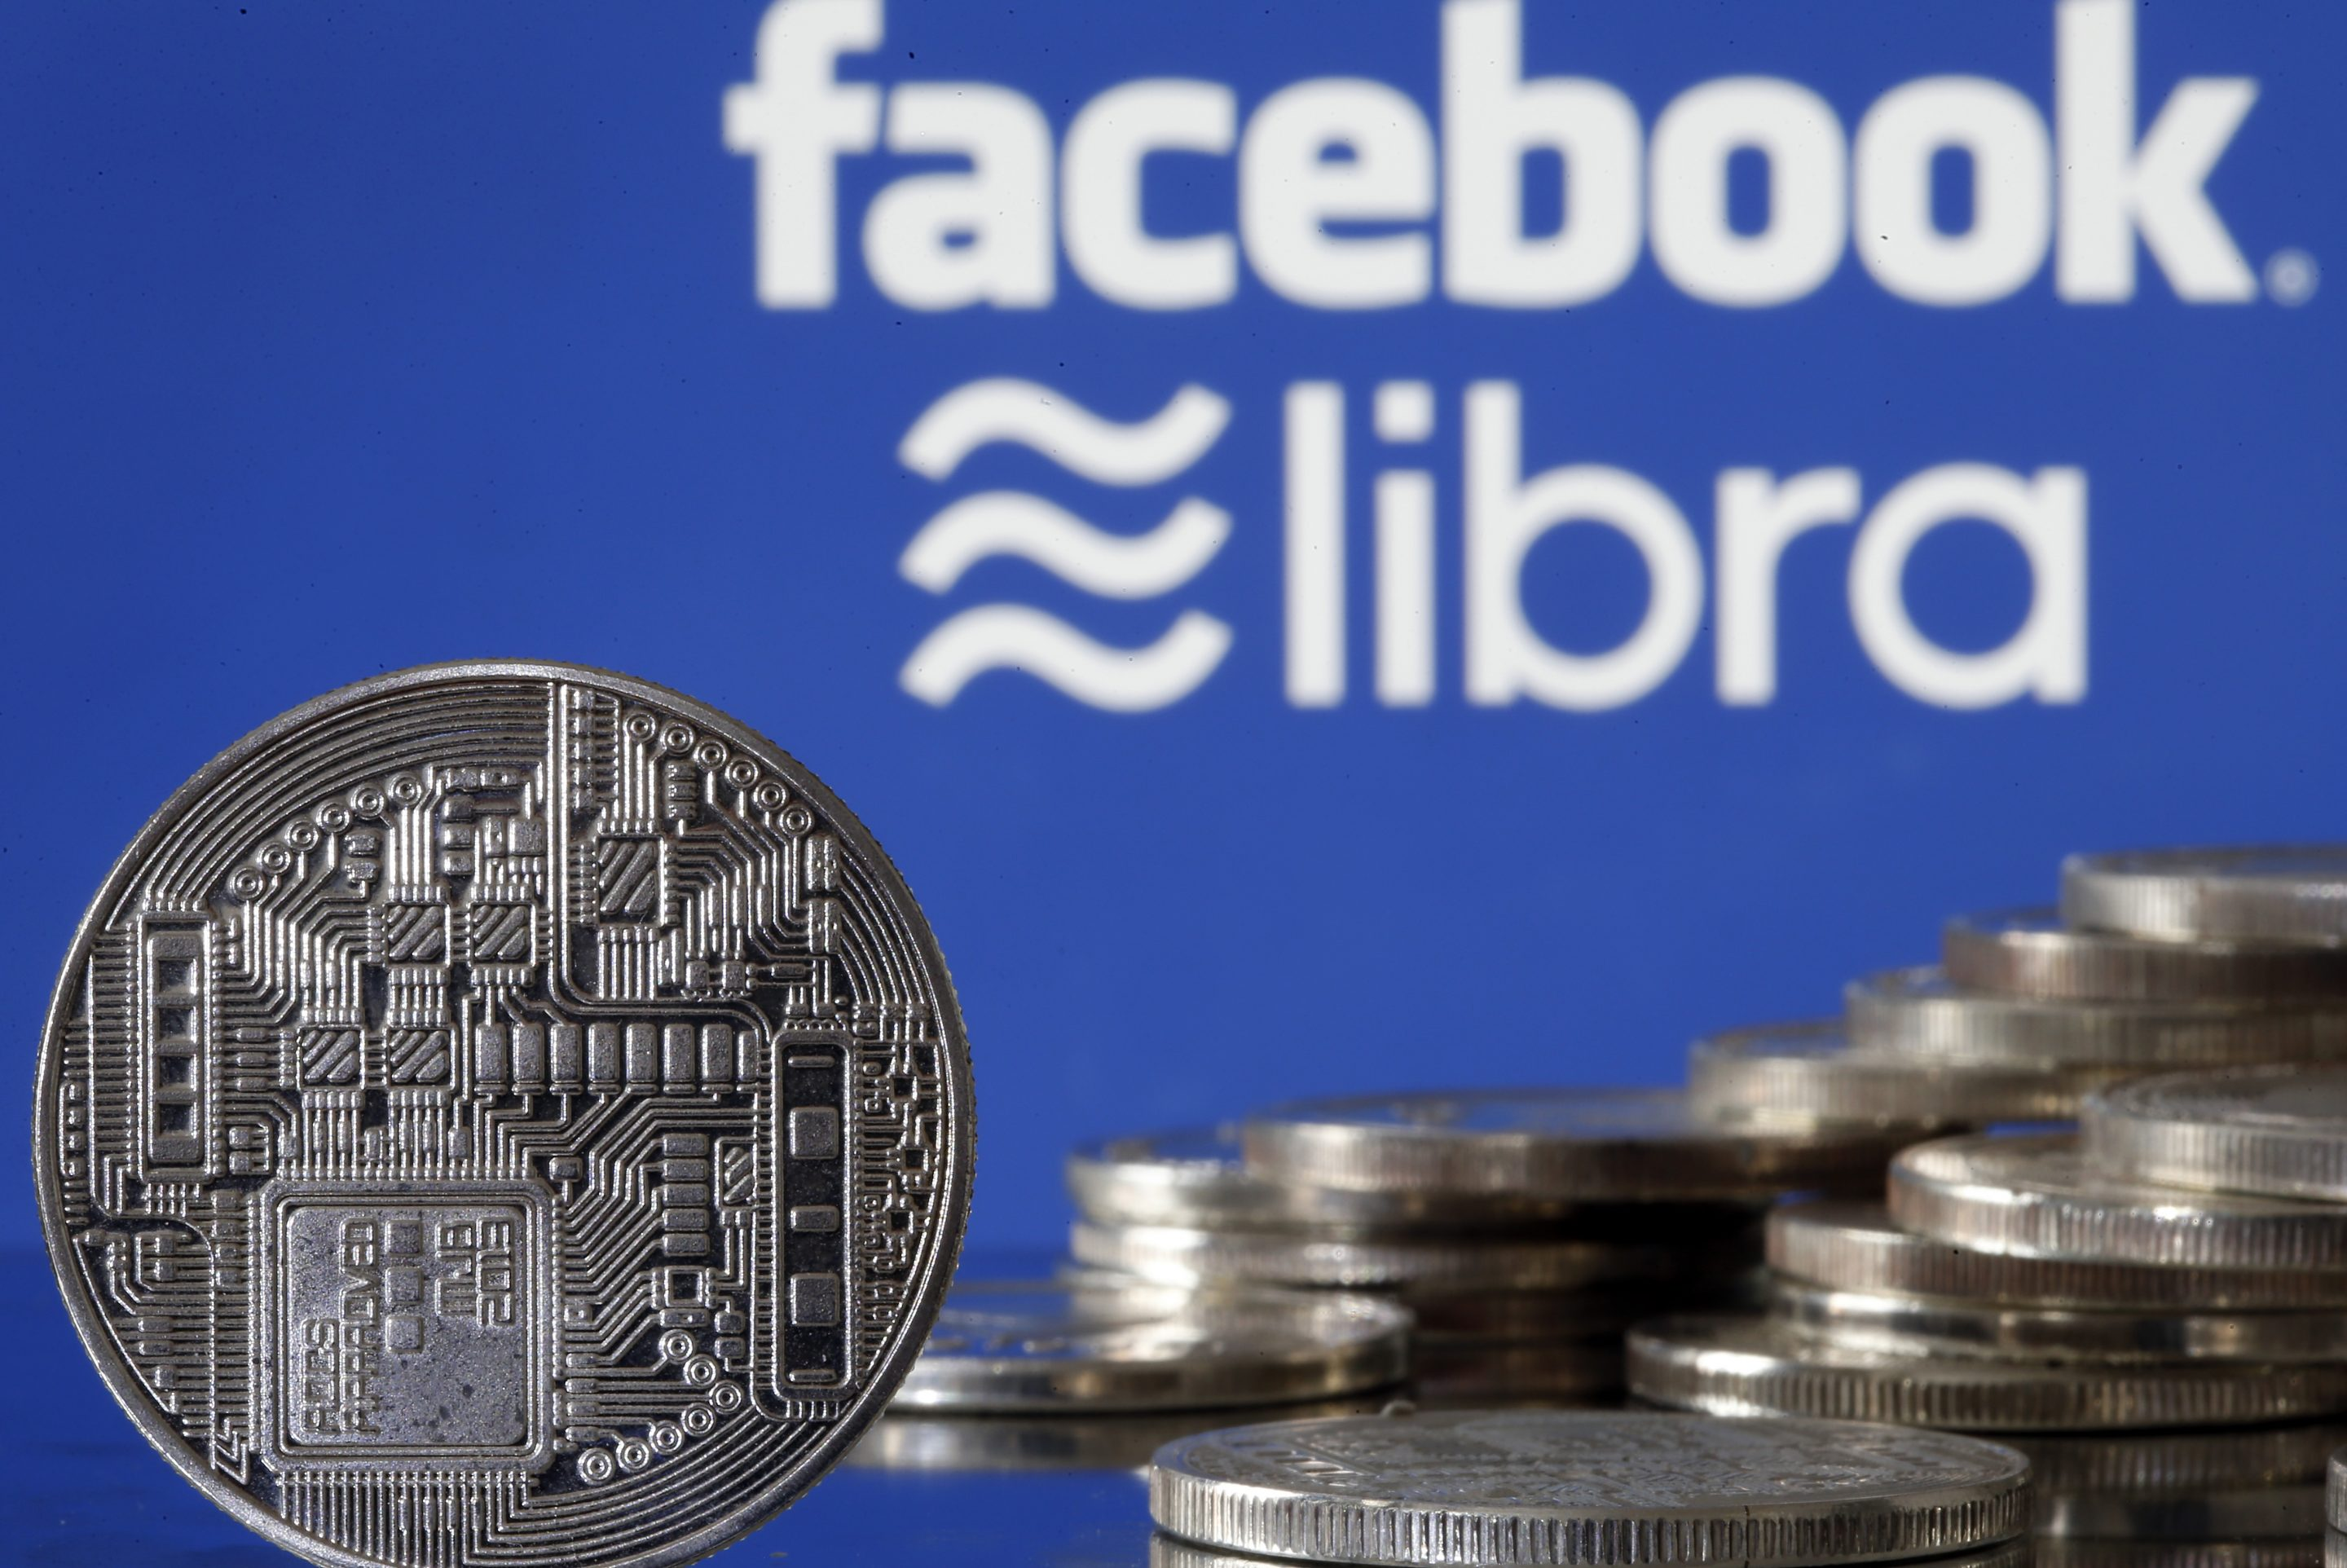 Will Facebook's Libra Become the Go-To Payment System Where